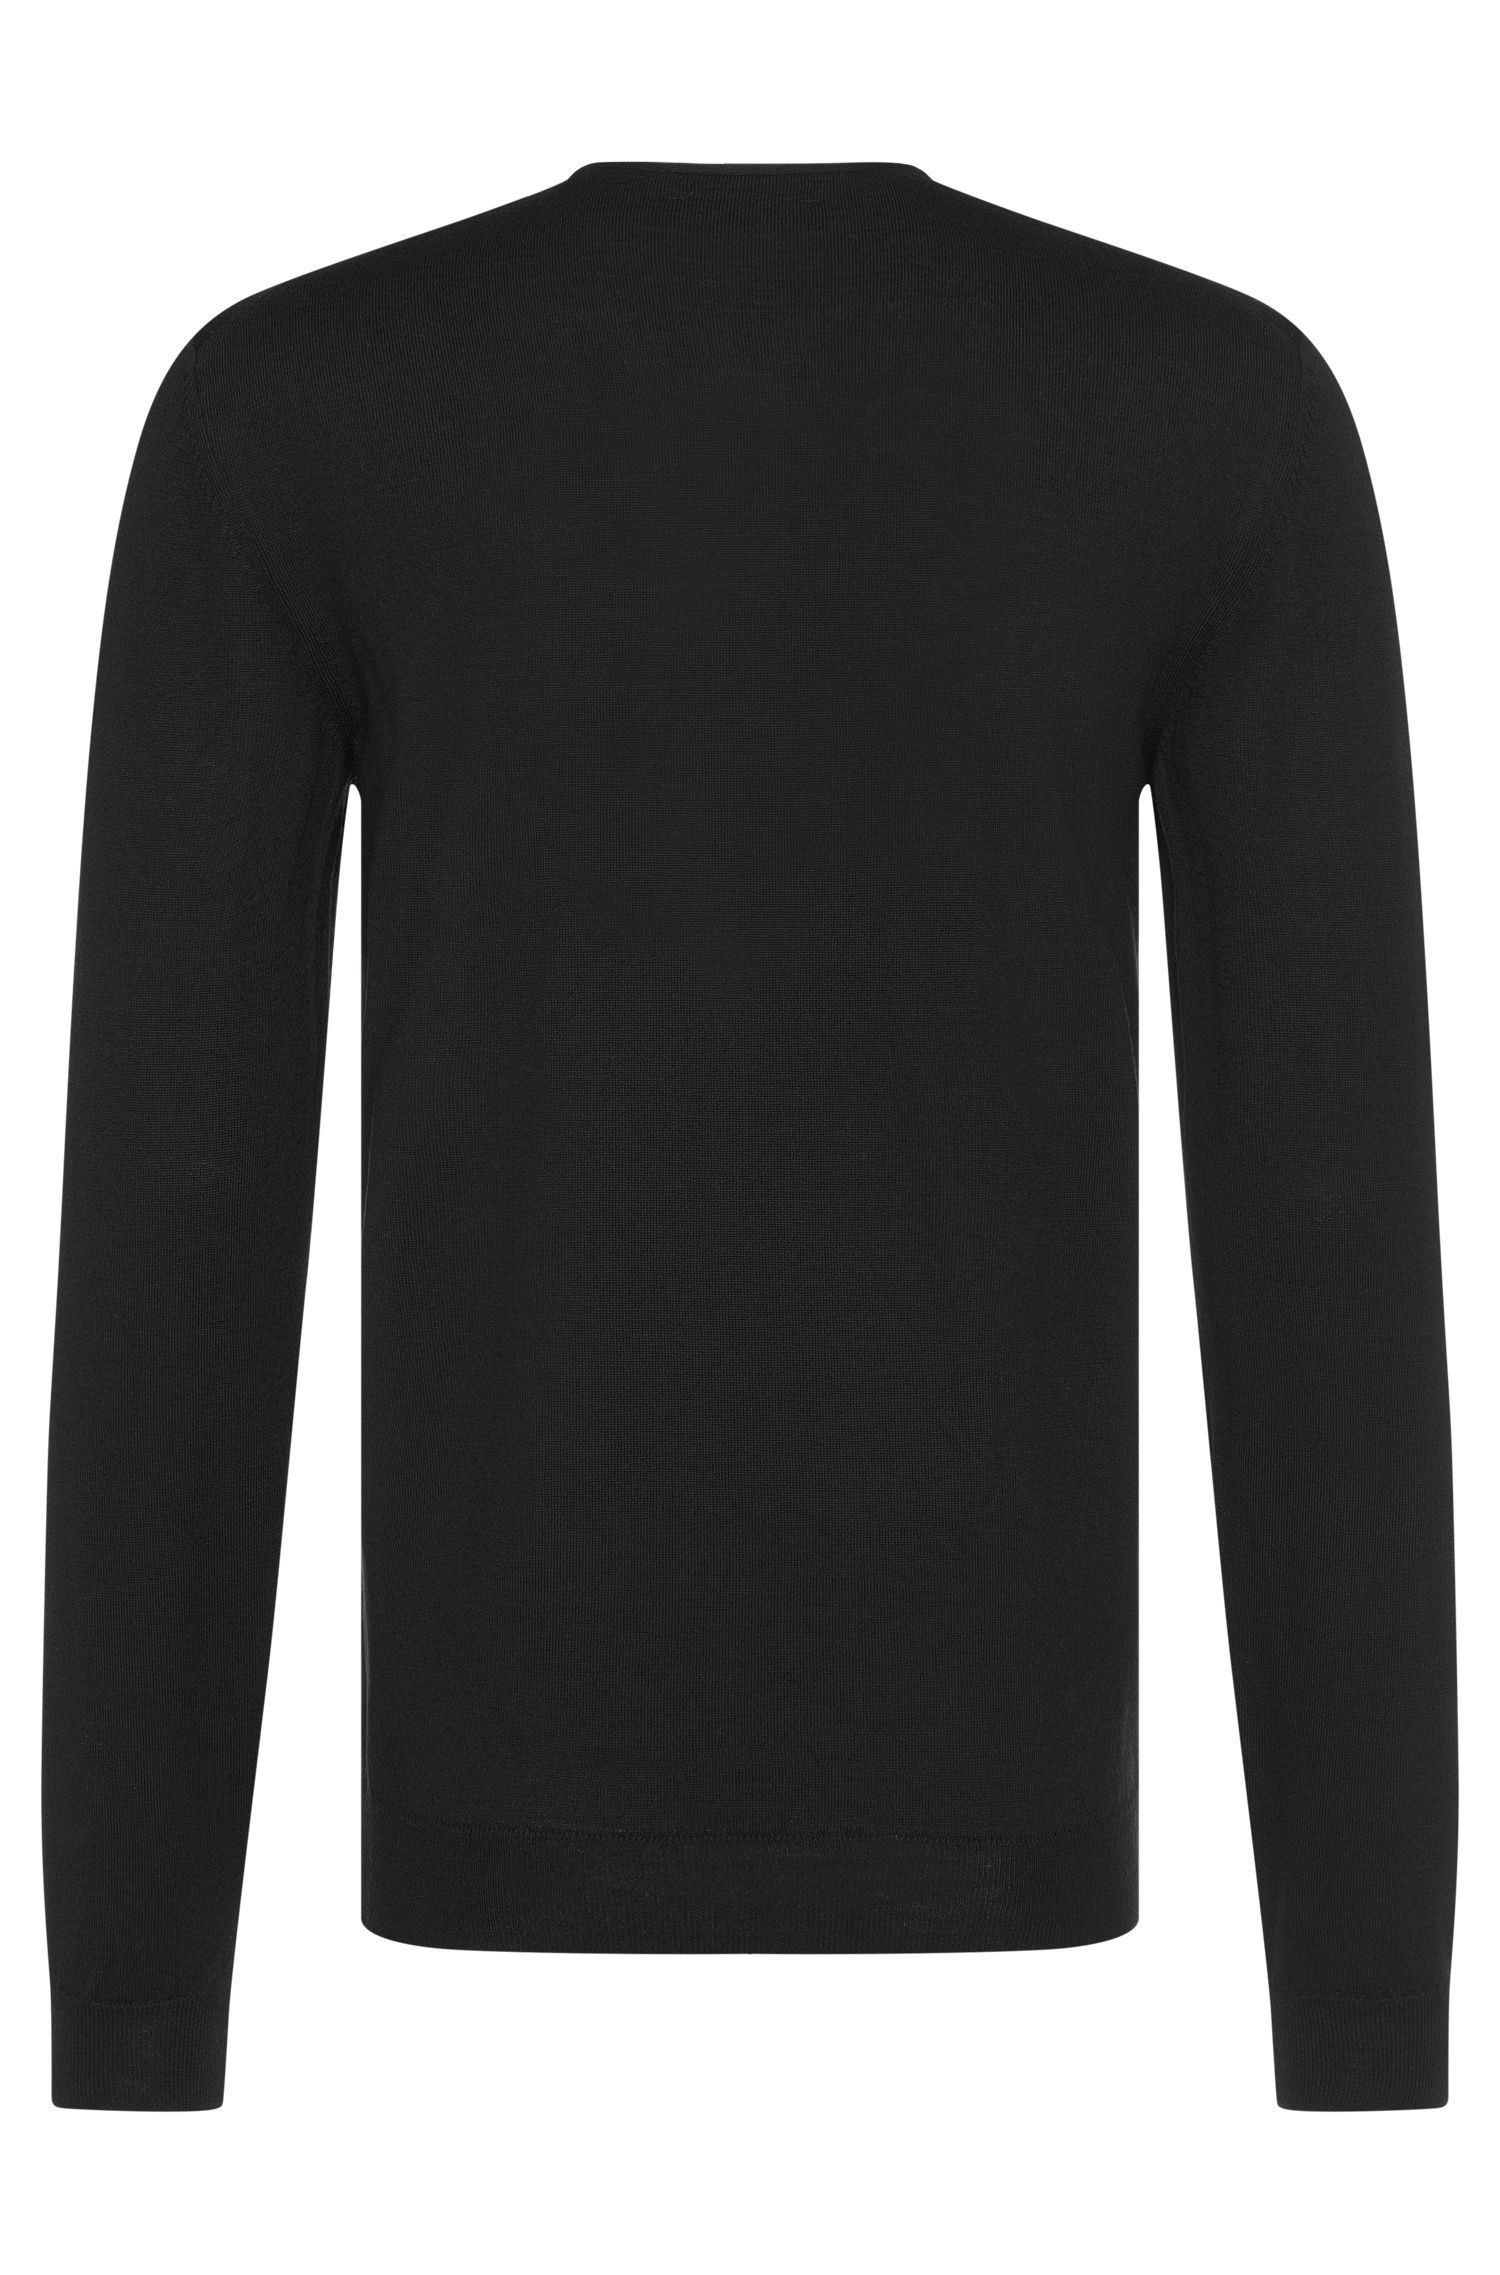 'Isaac' | Extra Fine Merino Virgin Wool Henley Sweater